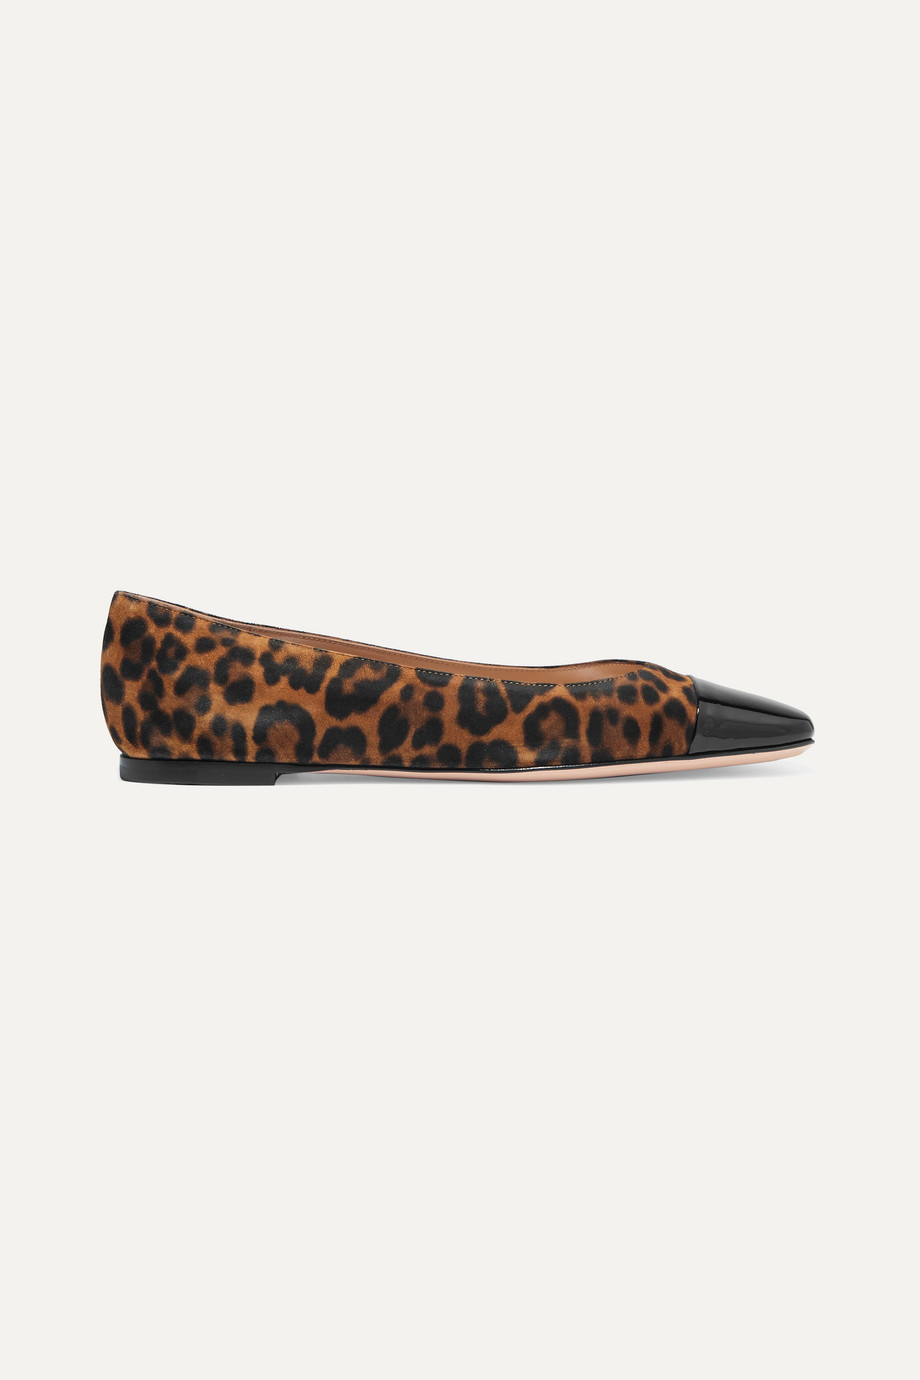 GIANVITO ROSSI Leopard-print suede and patent-leather ballet flats